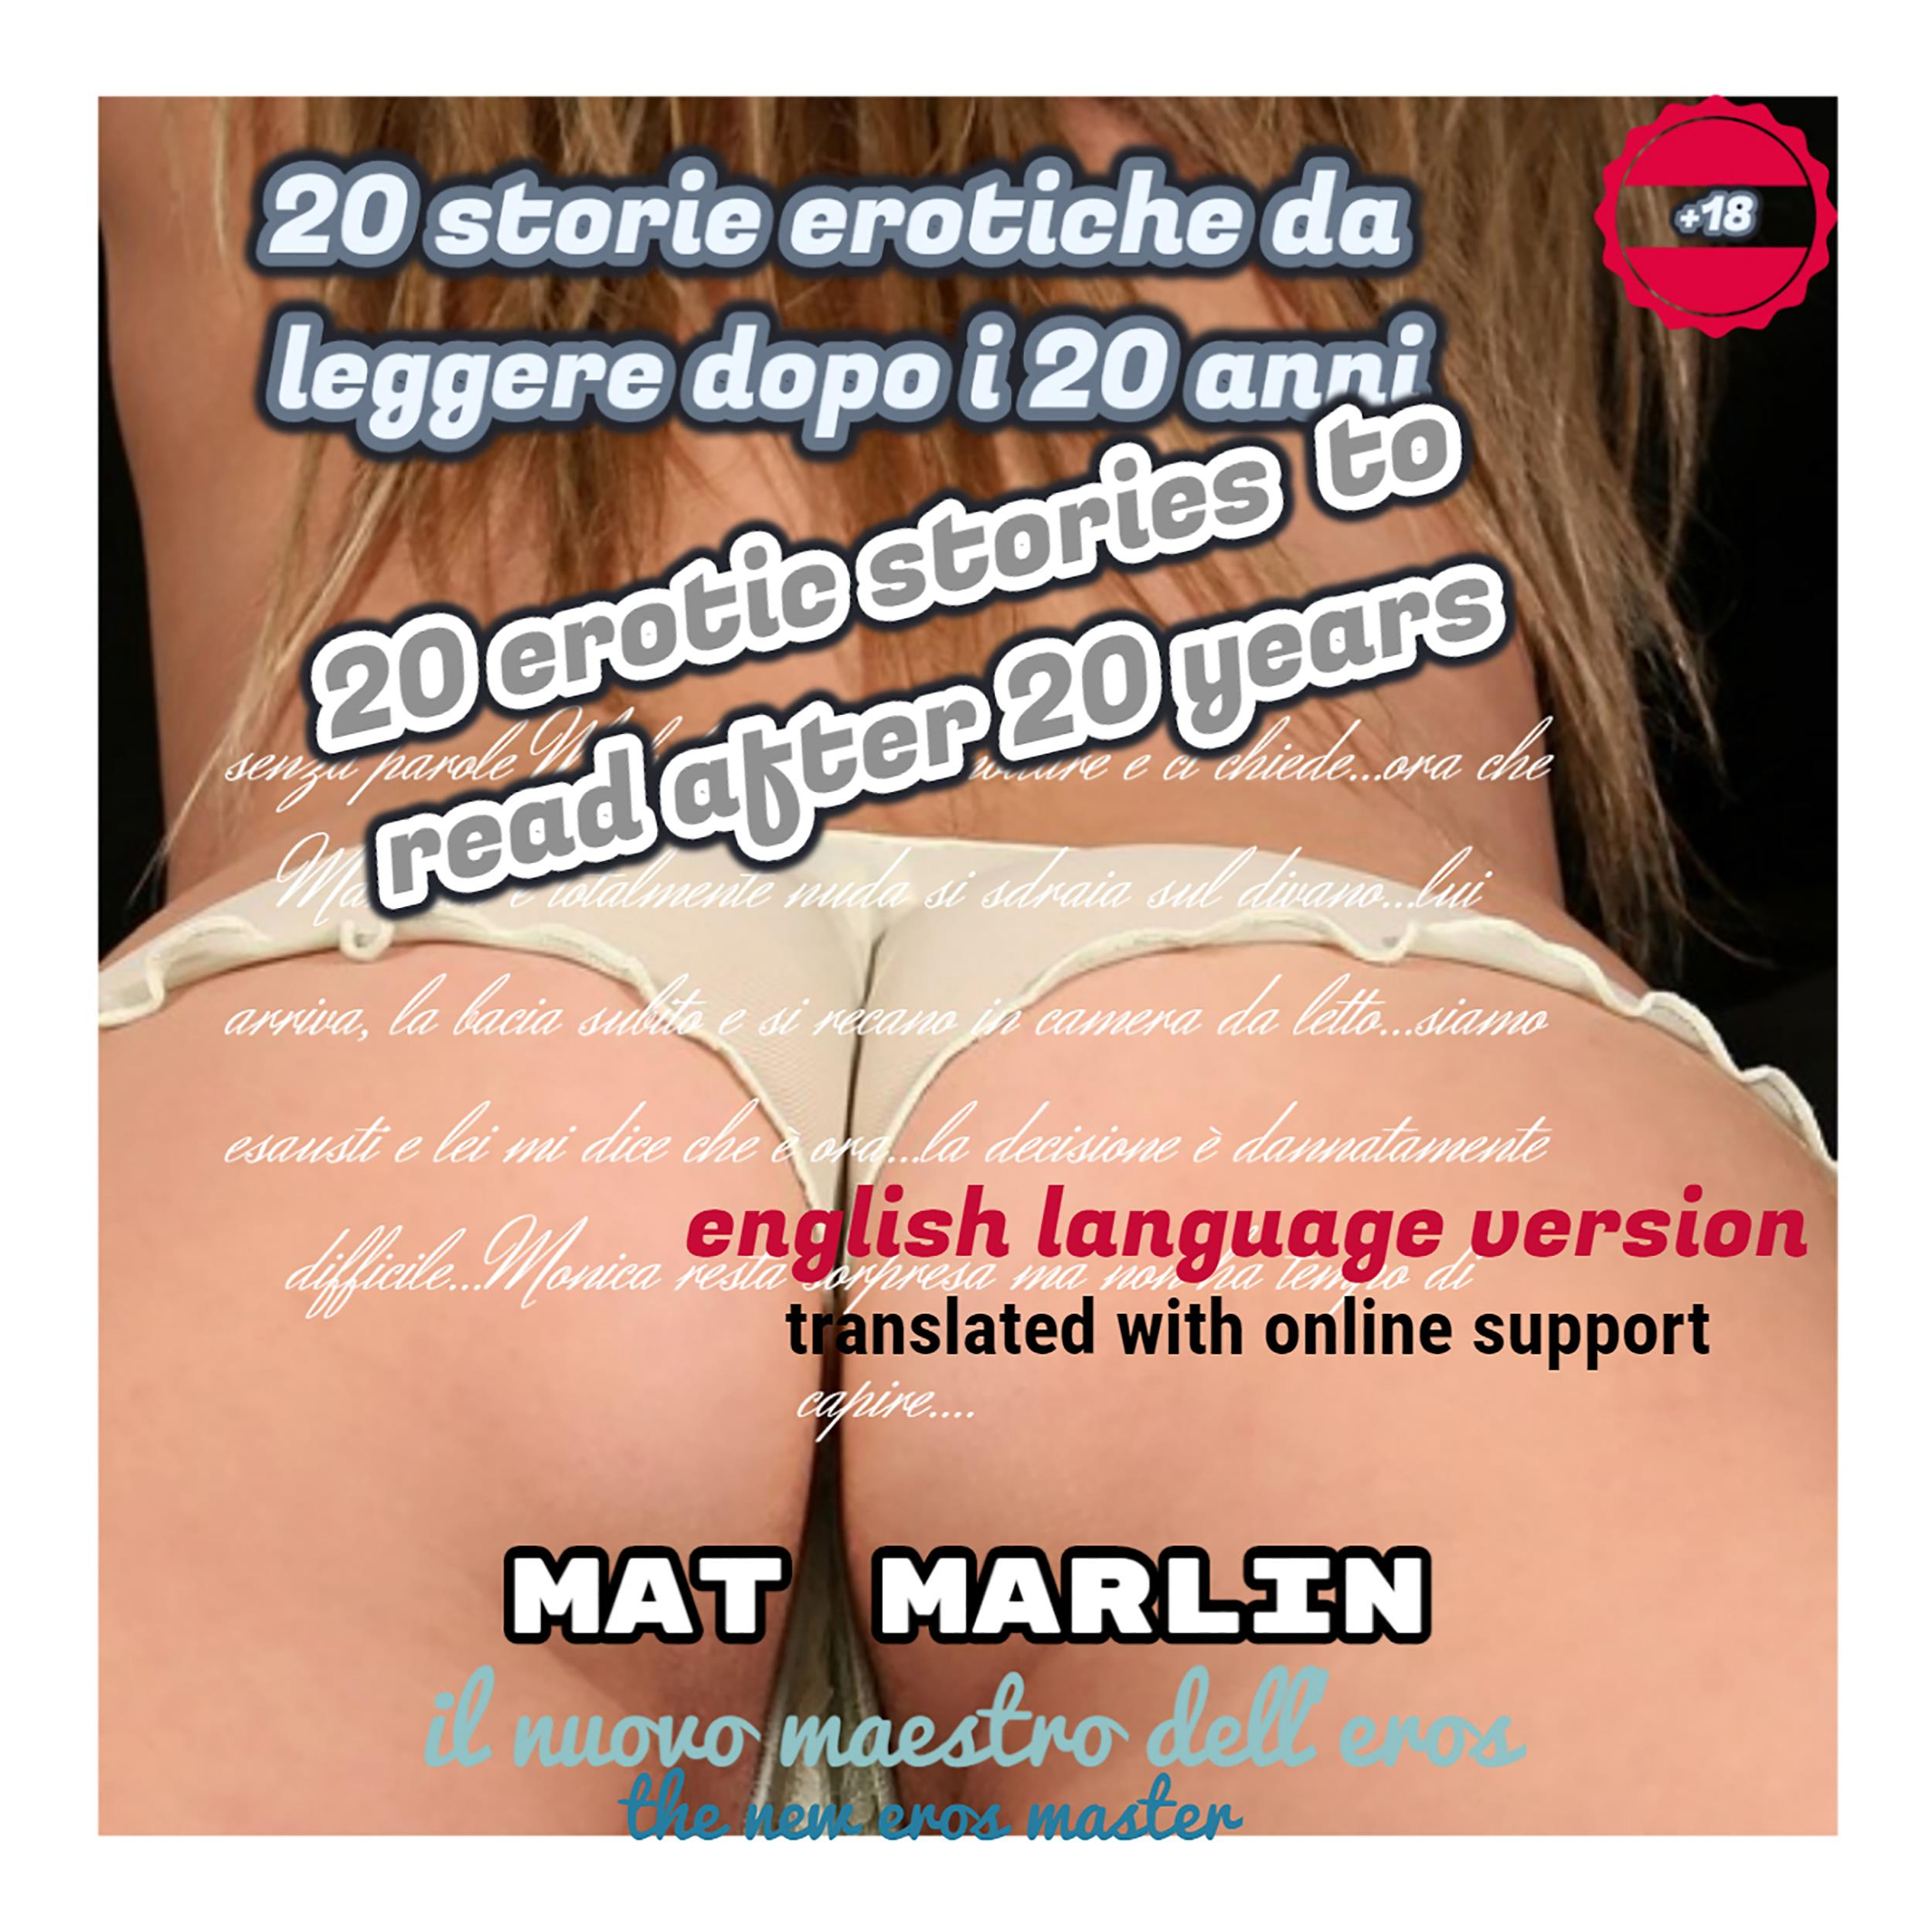 20 erotic stories to read after 20 years